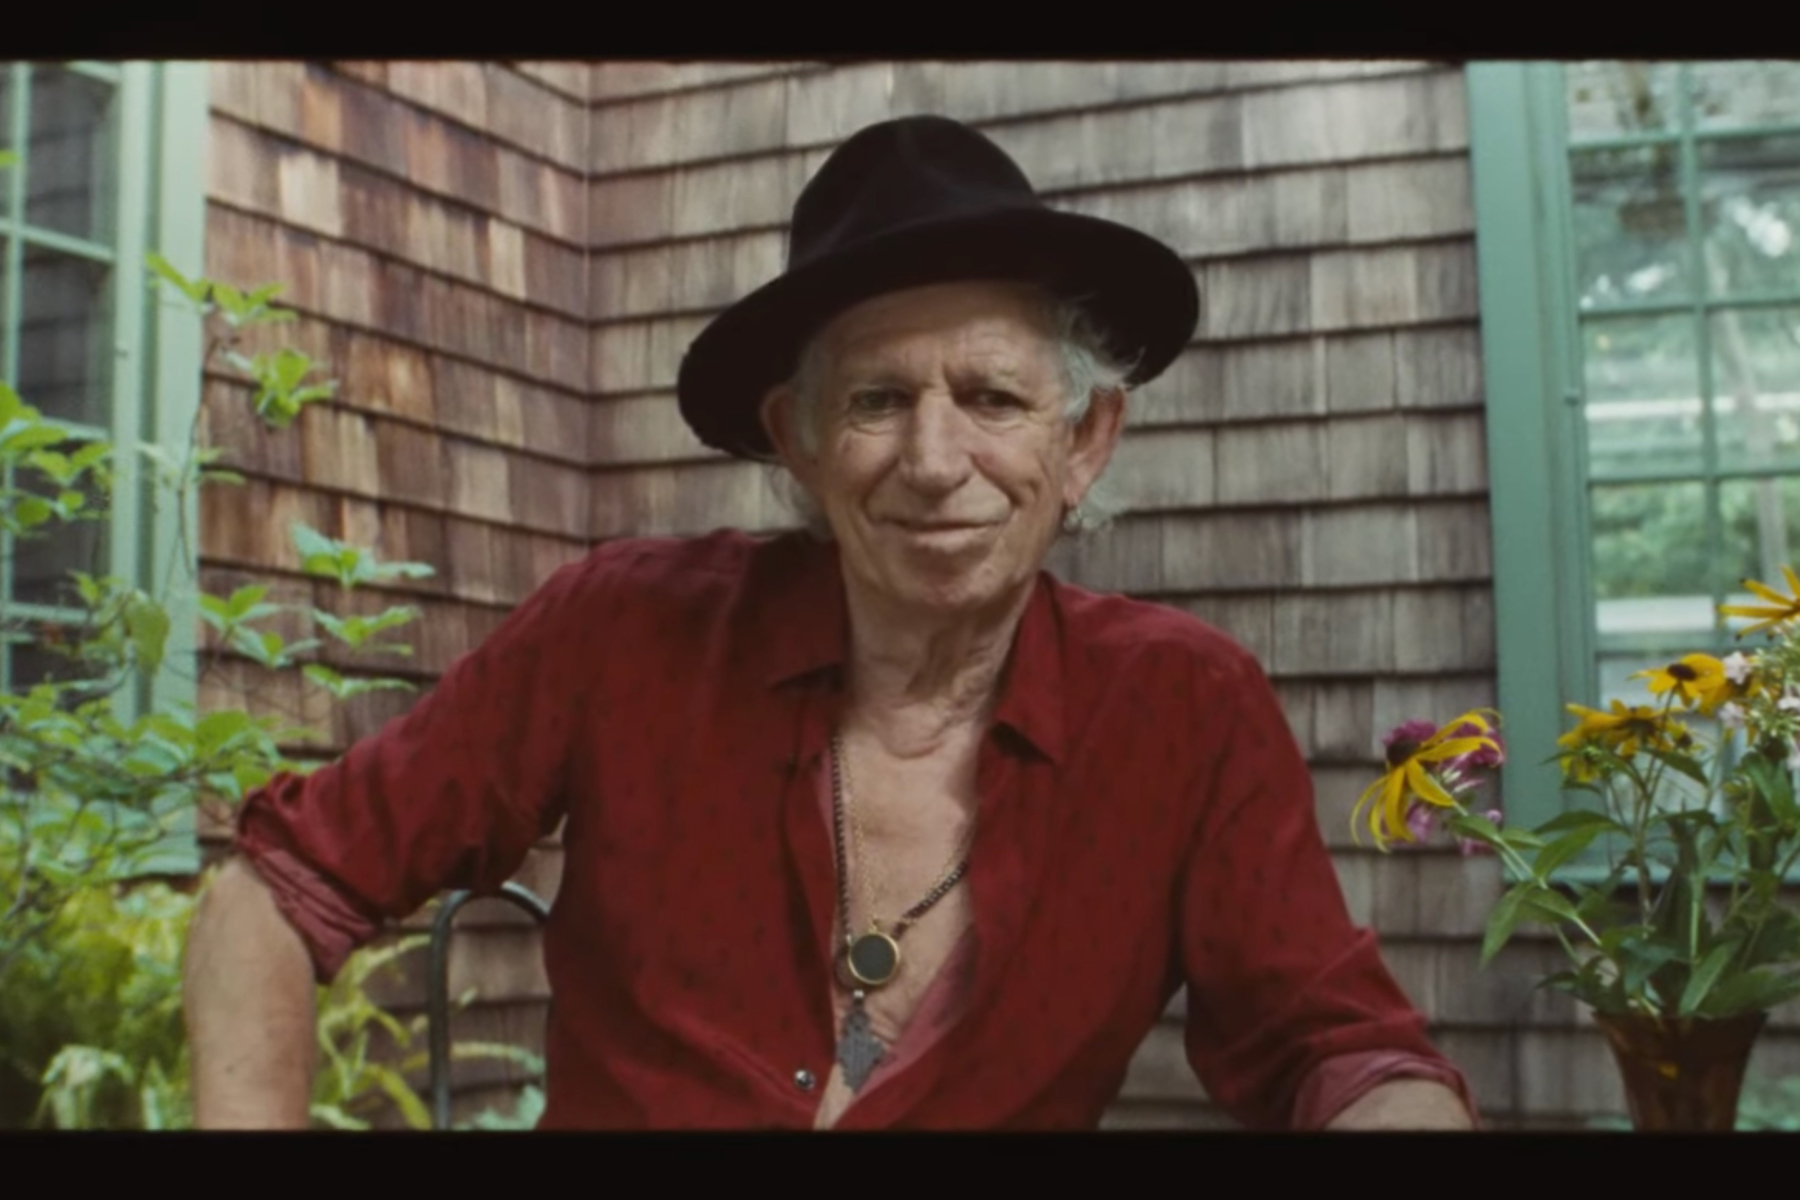 Keith Richards Releases New Video for 'Hate It When You Leave'